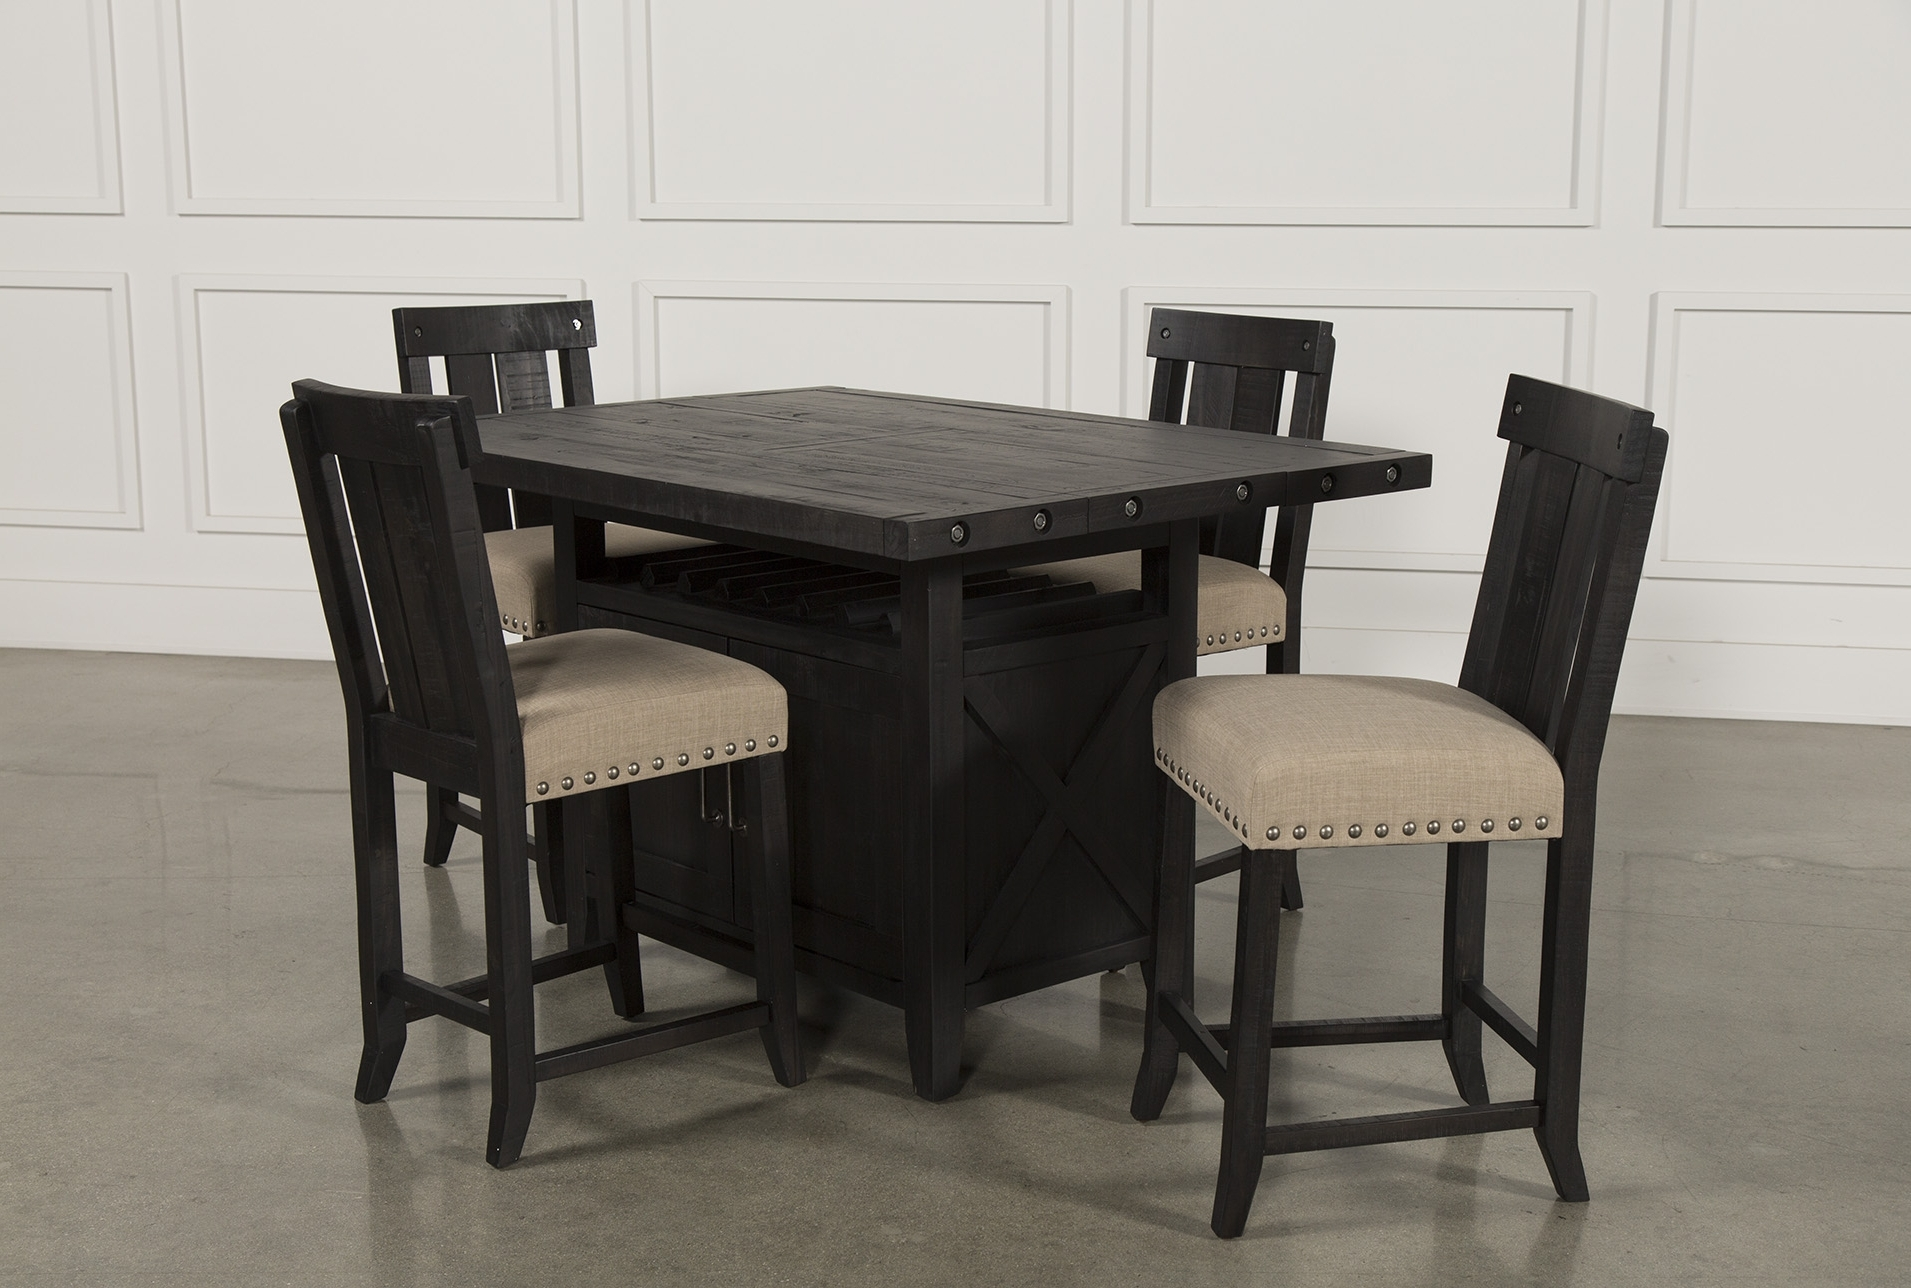 Jaxon Grey 5 Piece Extension Counter Sets With Fabric Stools Pertaining To Best And Newest Global Furniture Bar Table Black (View 10 of 25)